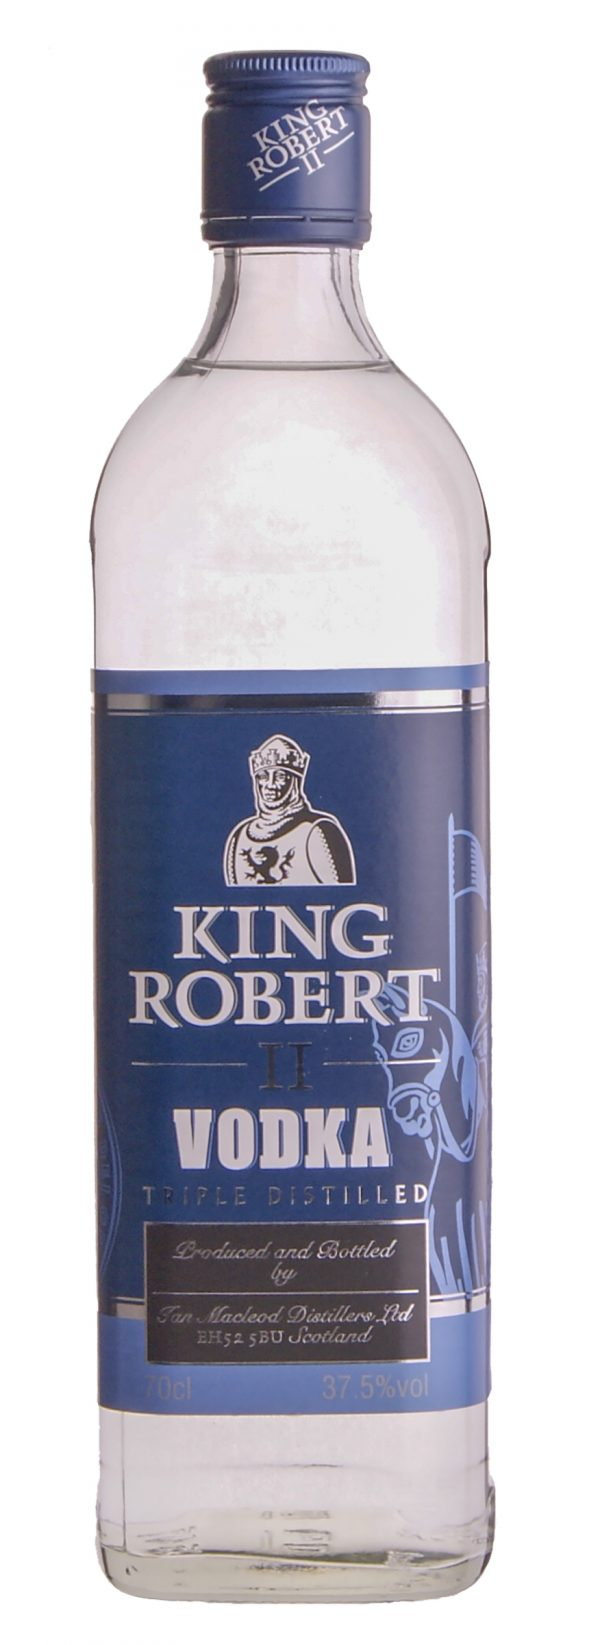 King Robert II Vodka